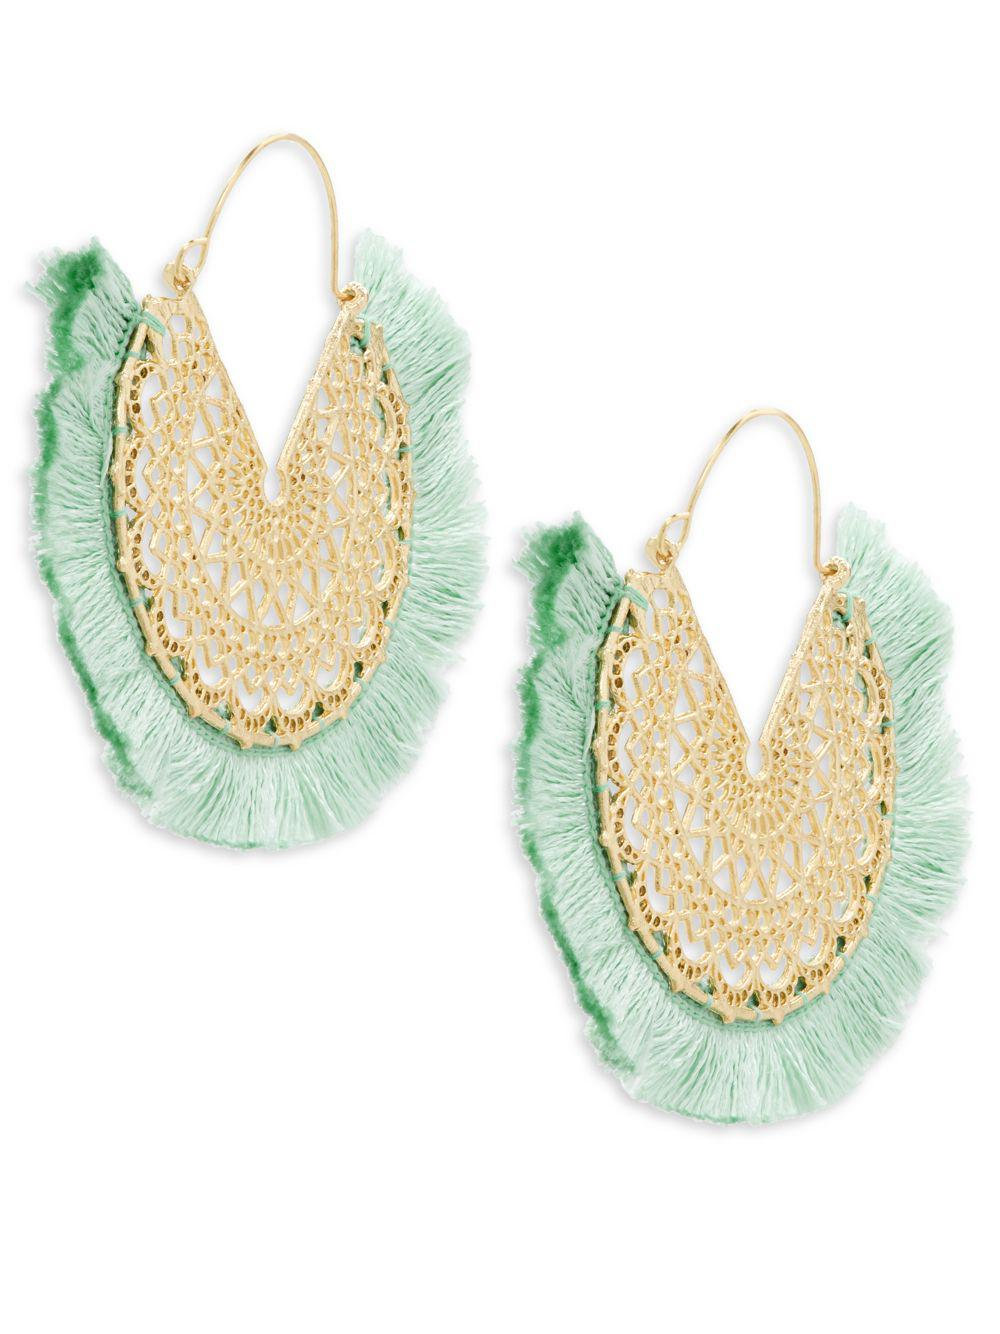 Panacea Filigree Fringe Drop Earrings